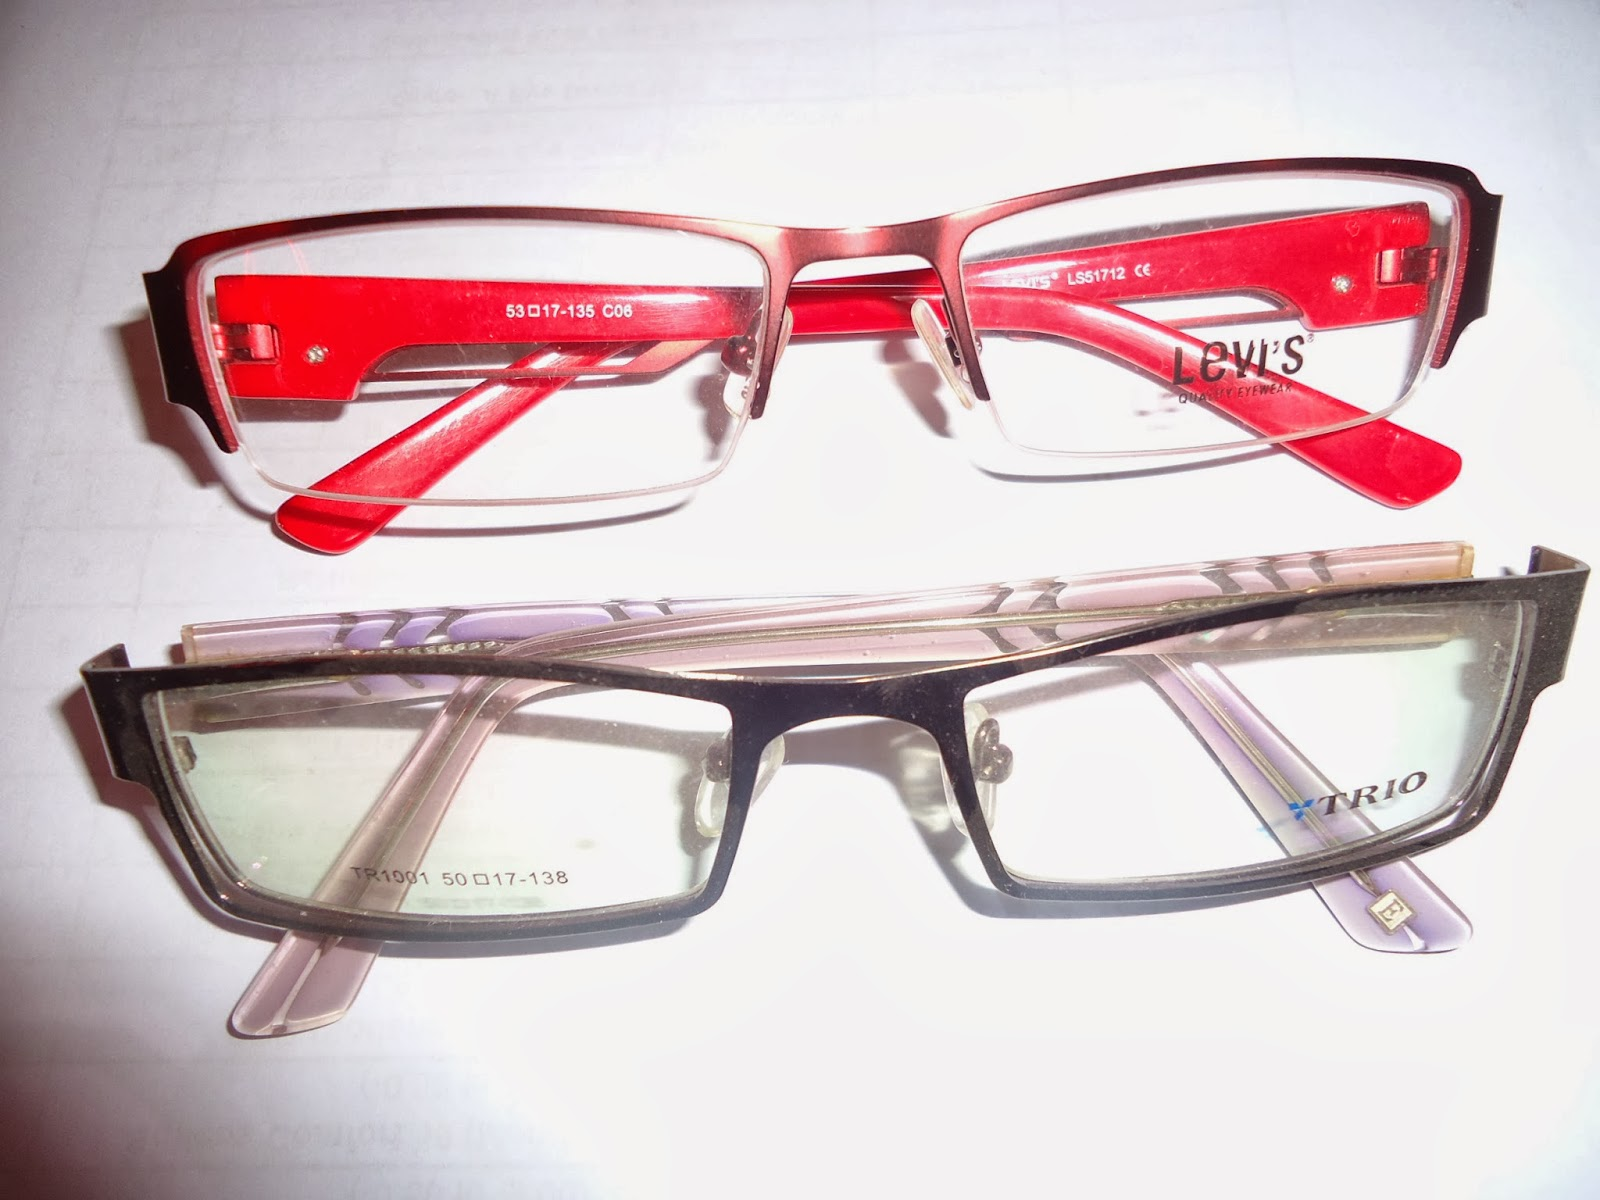 Sunglasses Frames For Thick Lenses : Buy Frames, Sunglasses,Contact lenses : Thick Side Red ...